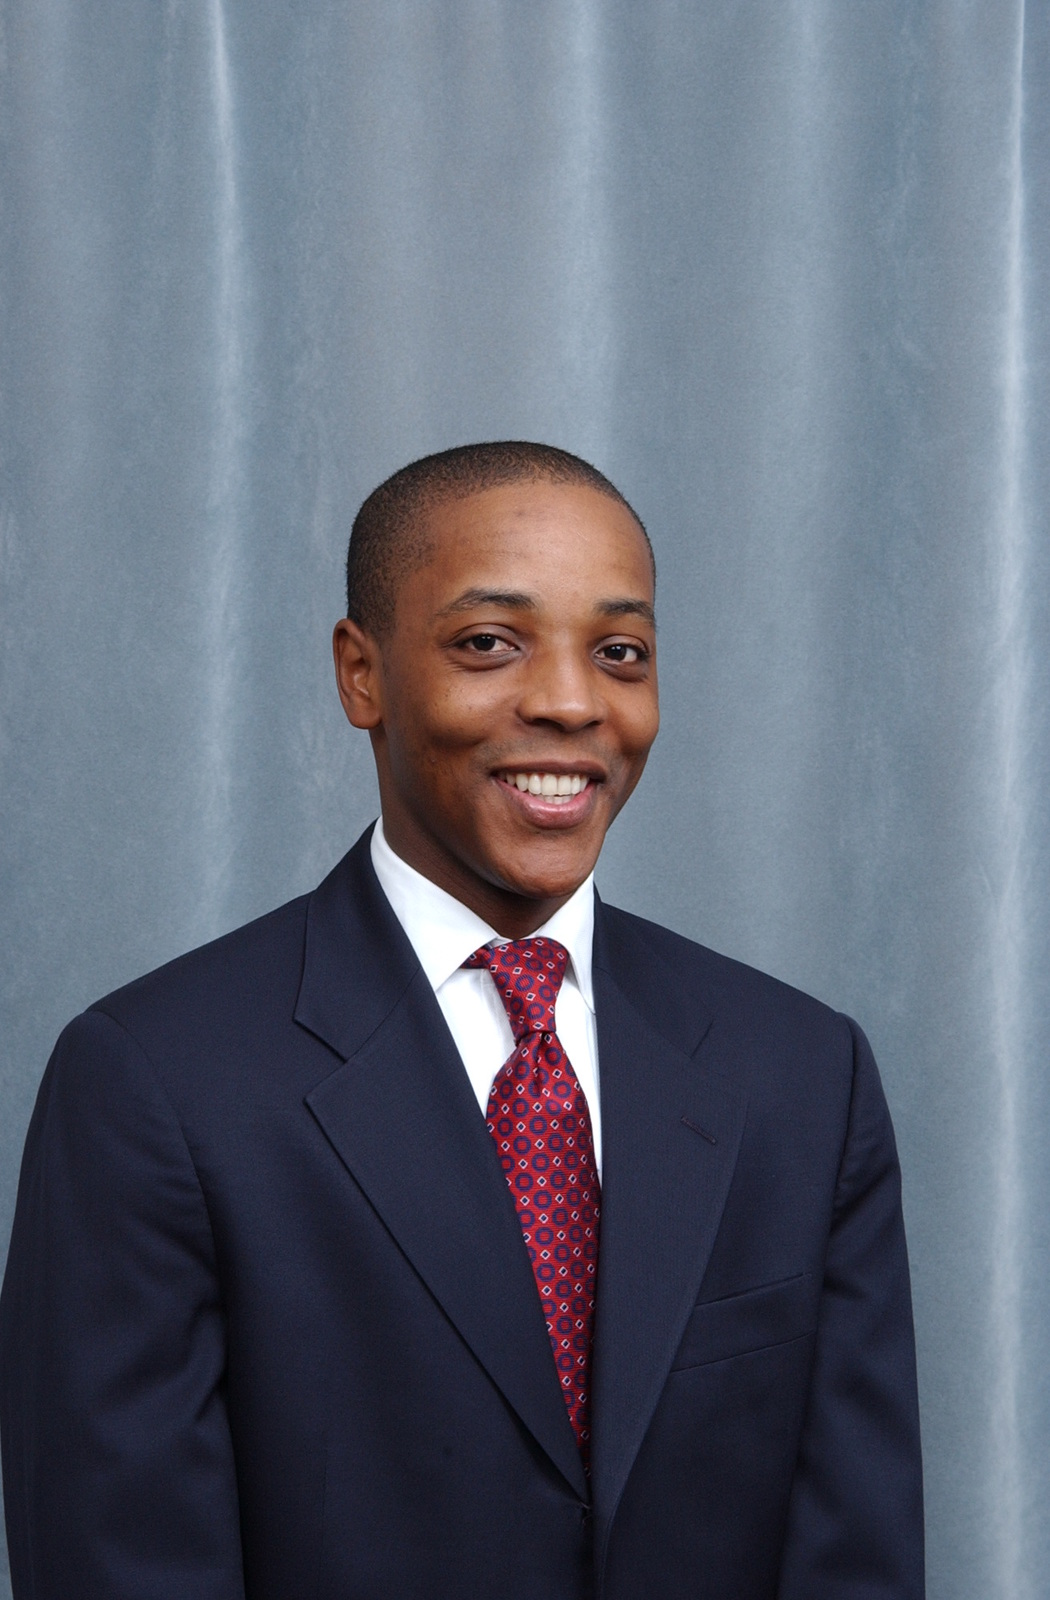 [Assignment: 48-DPA-N_fnp_ward] Portrait of Marcus Ward, [Special Assistant to the Assistant Secretary for] Fish, Wildlife, and Parks [48-DPA-N_fnp_ward_DSC_0006.JPG]